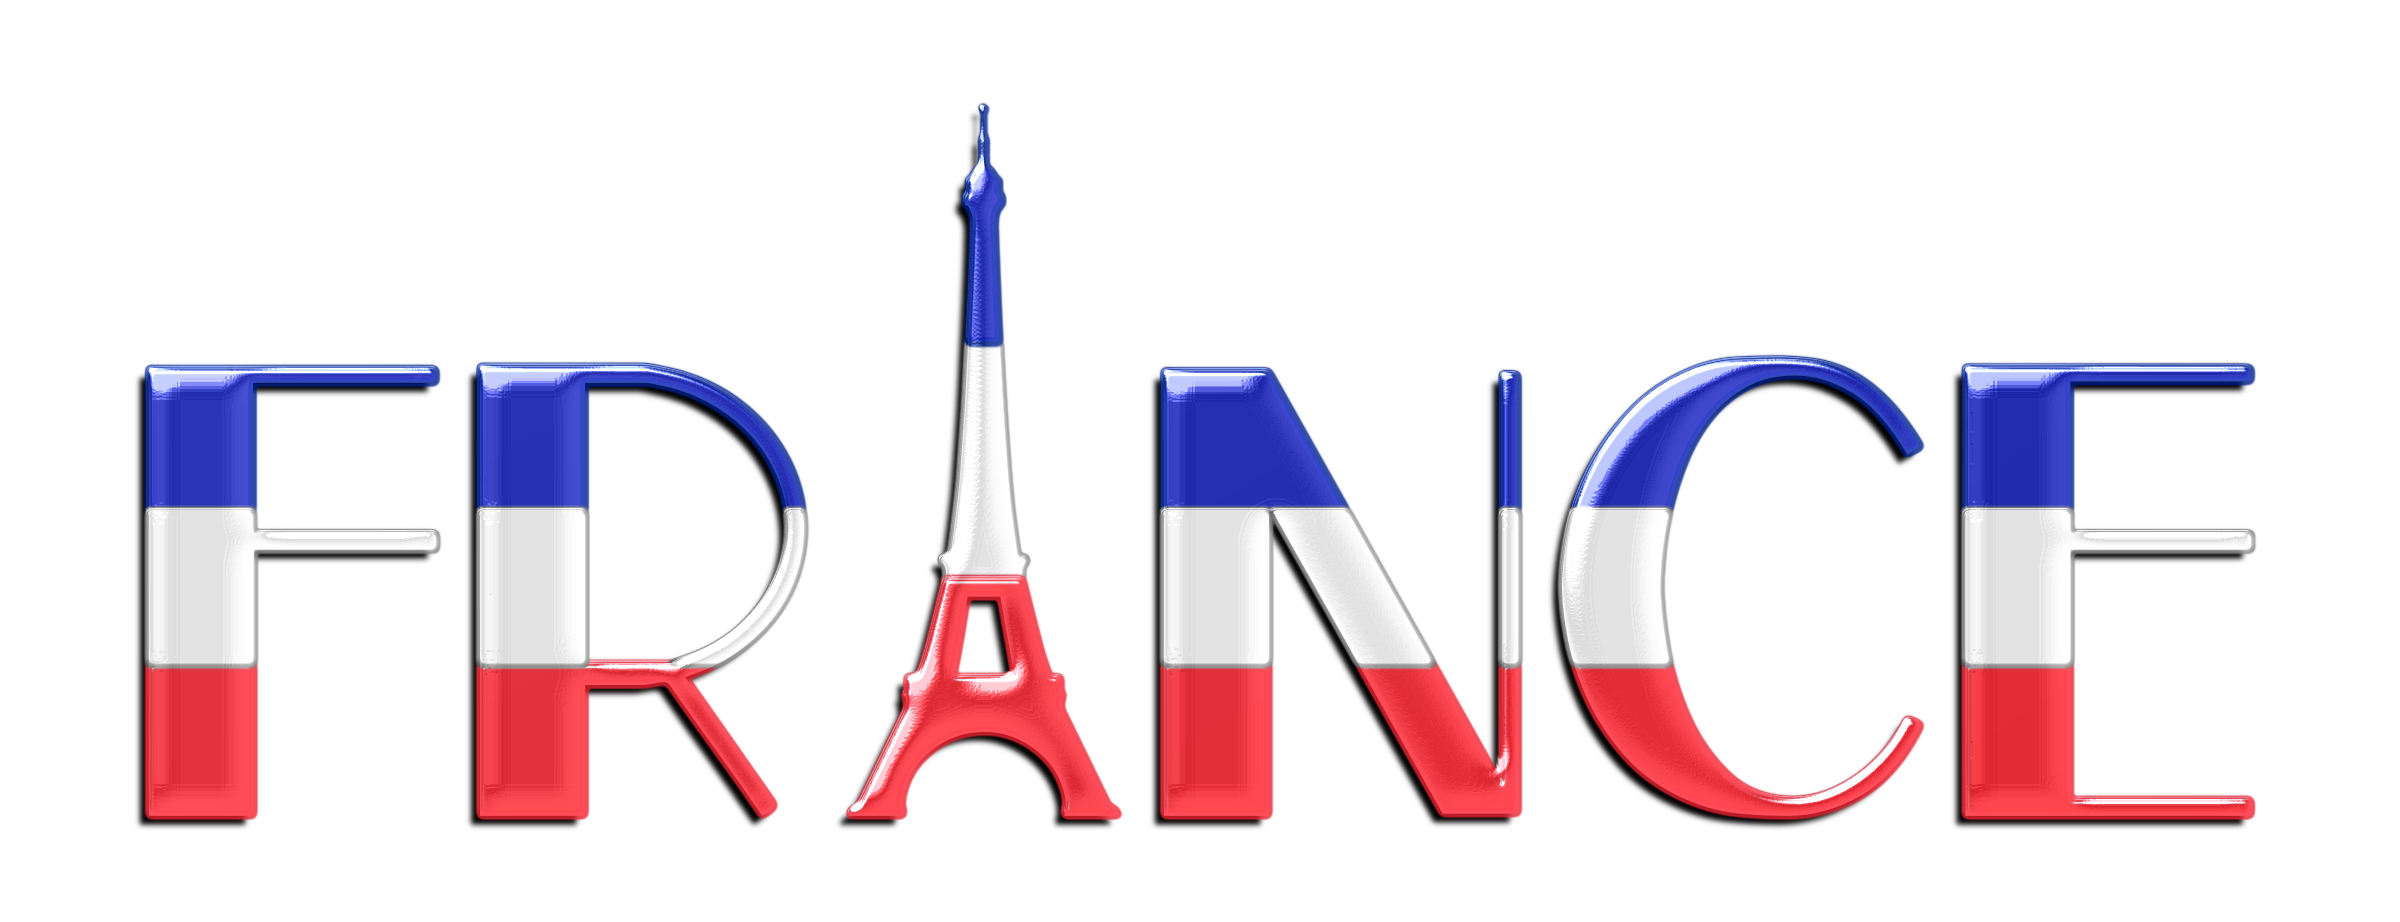 freeuse download France clipart. Typography enhanced big image